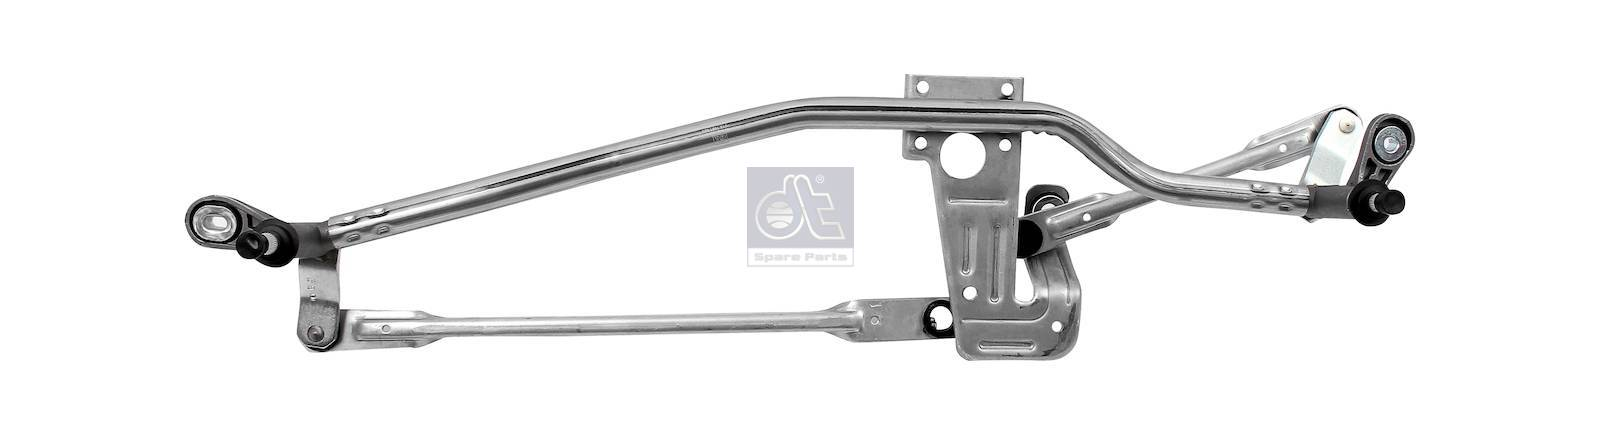 Wiper linkage, without motor